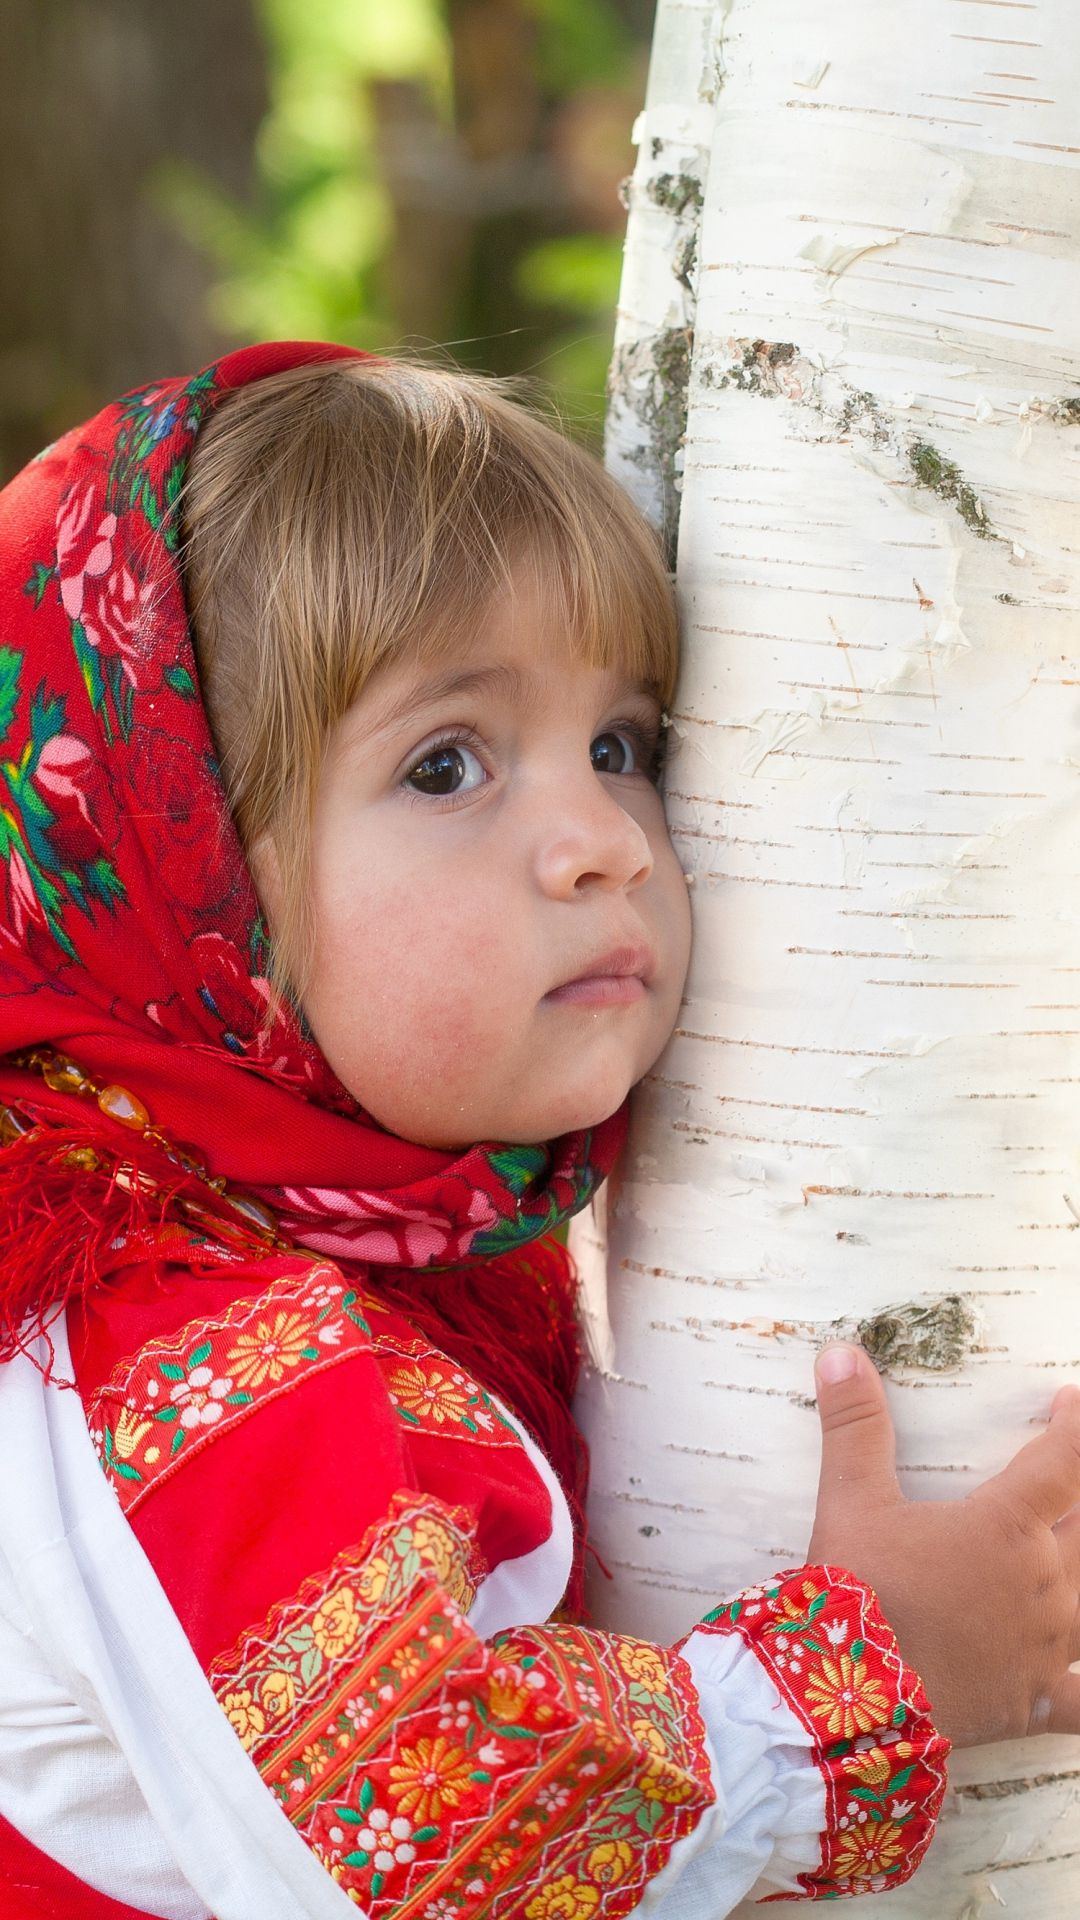 beautiful russian child! this could have been an ancestor